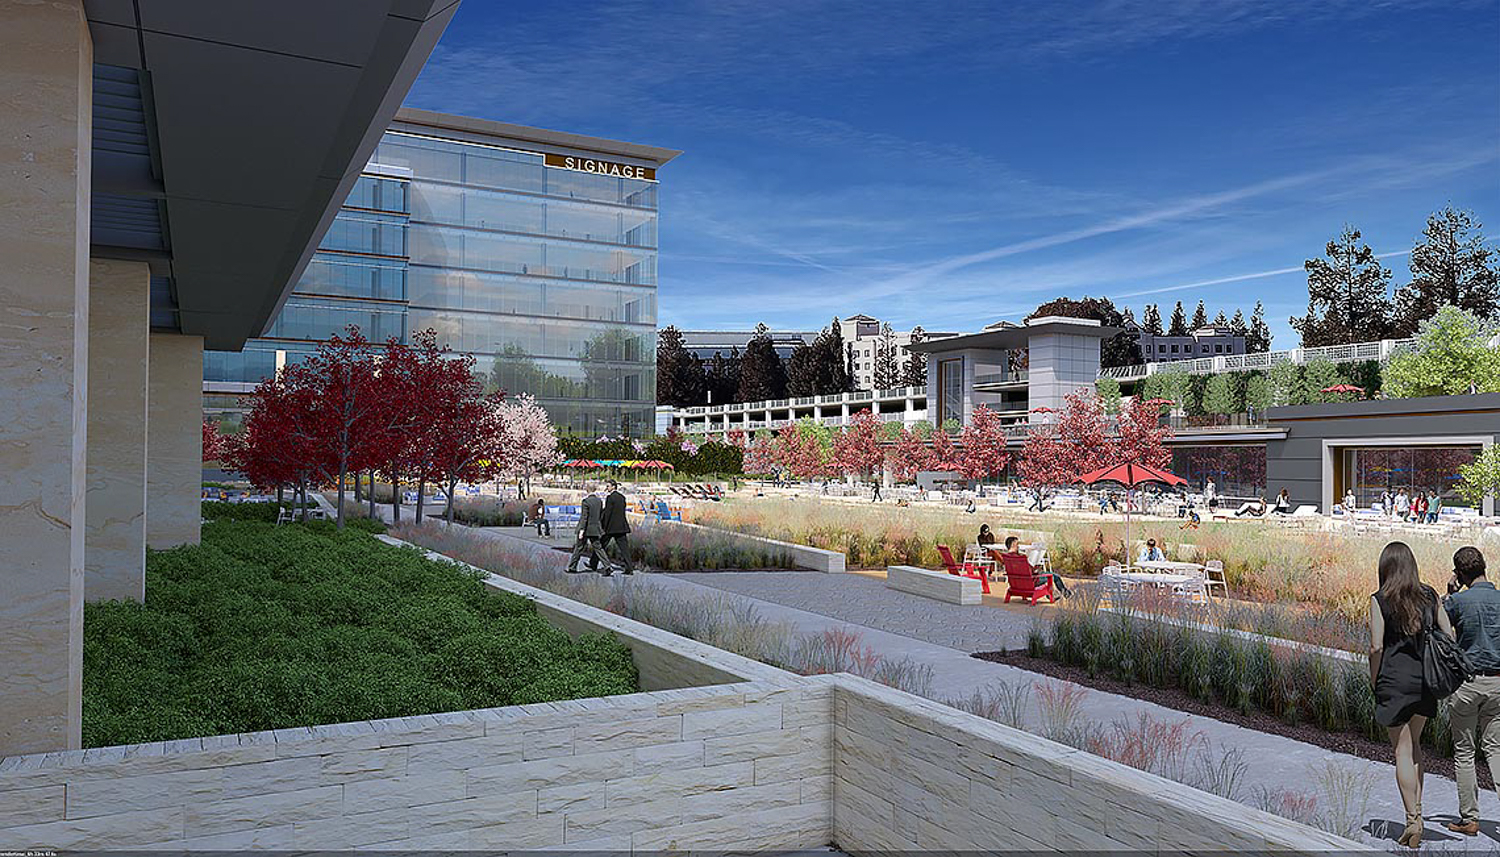 3625 Peterson Way amenity building and courtyard, rendering by ARC Tech